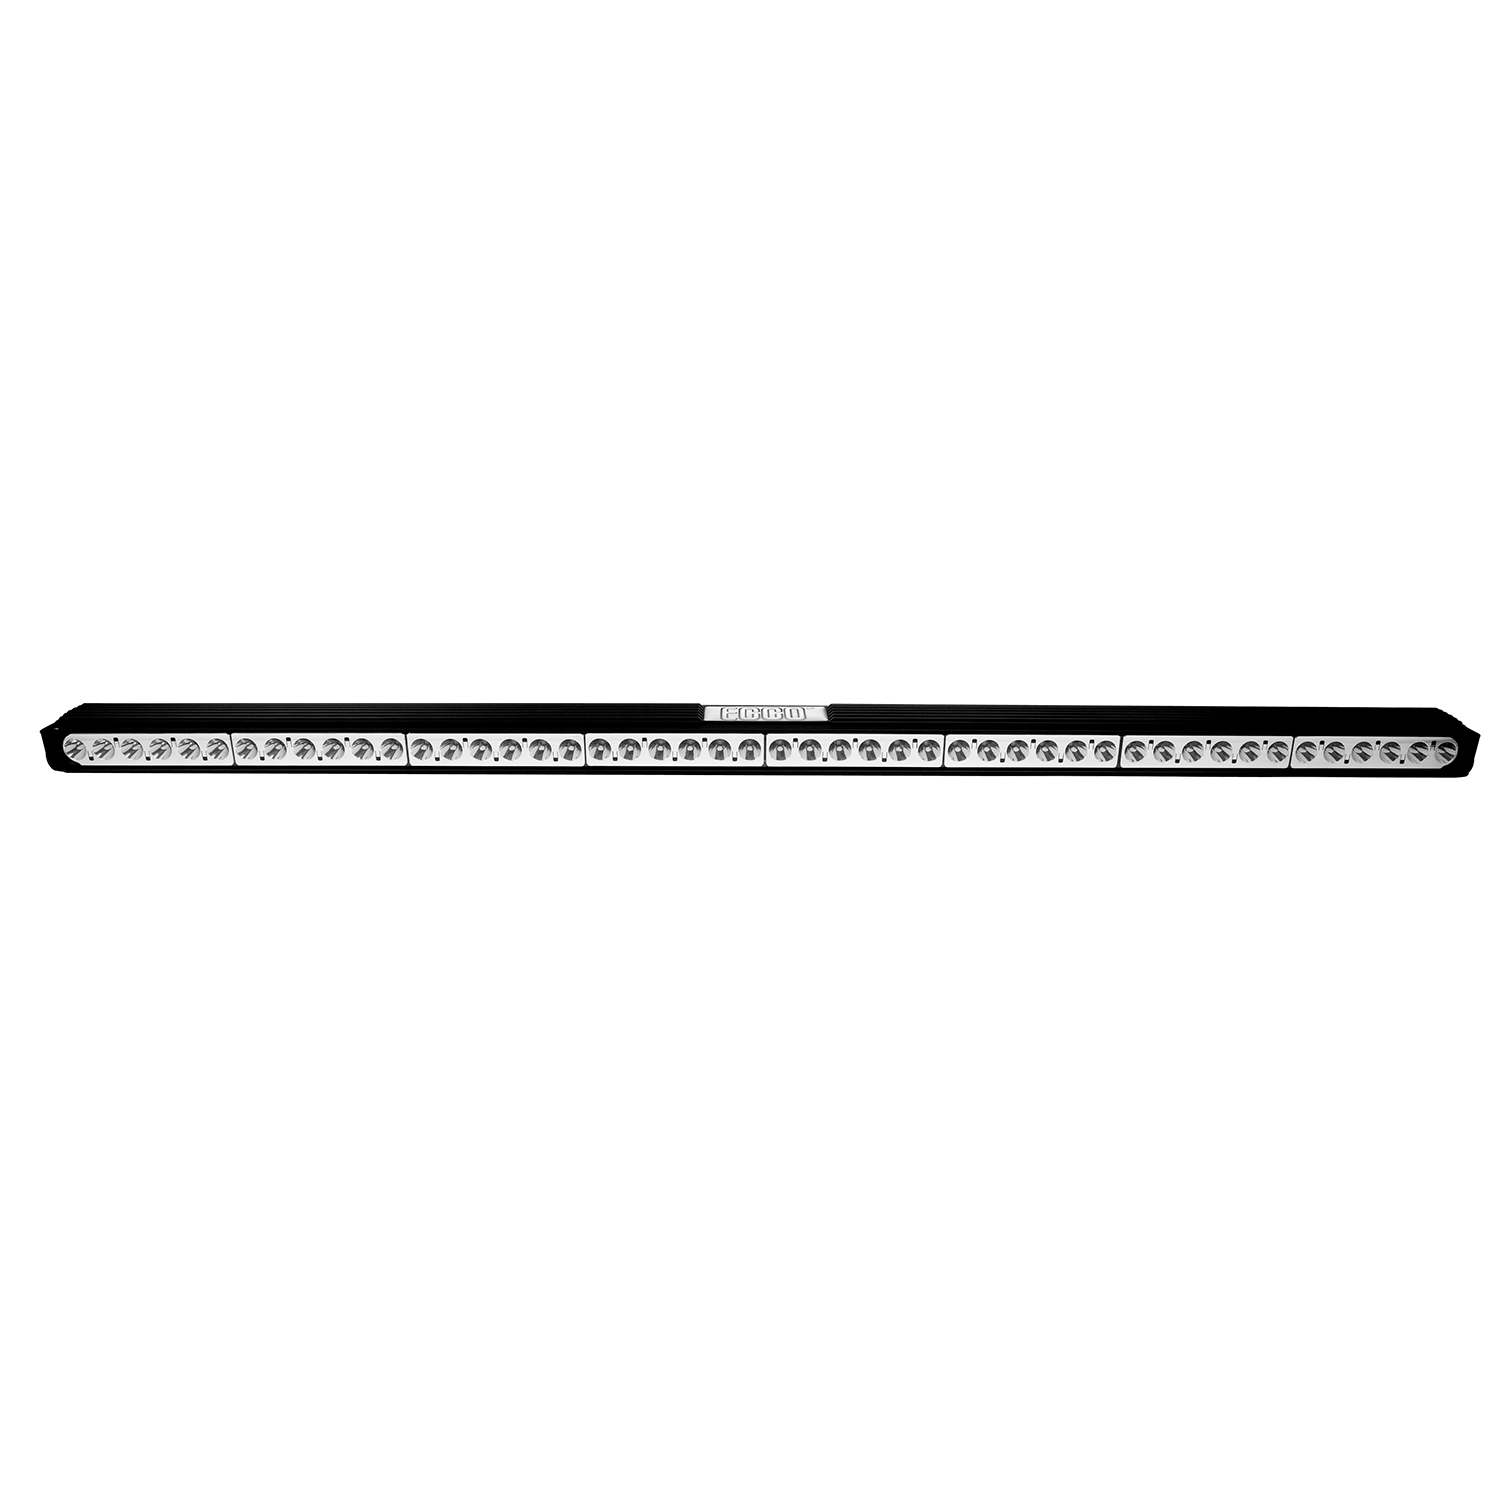 Signal Bar: LED Safety Director 3410 Series (no cable/controller), amber